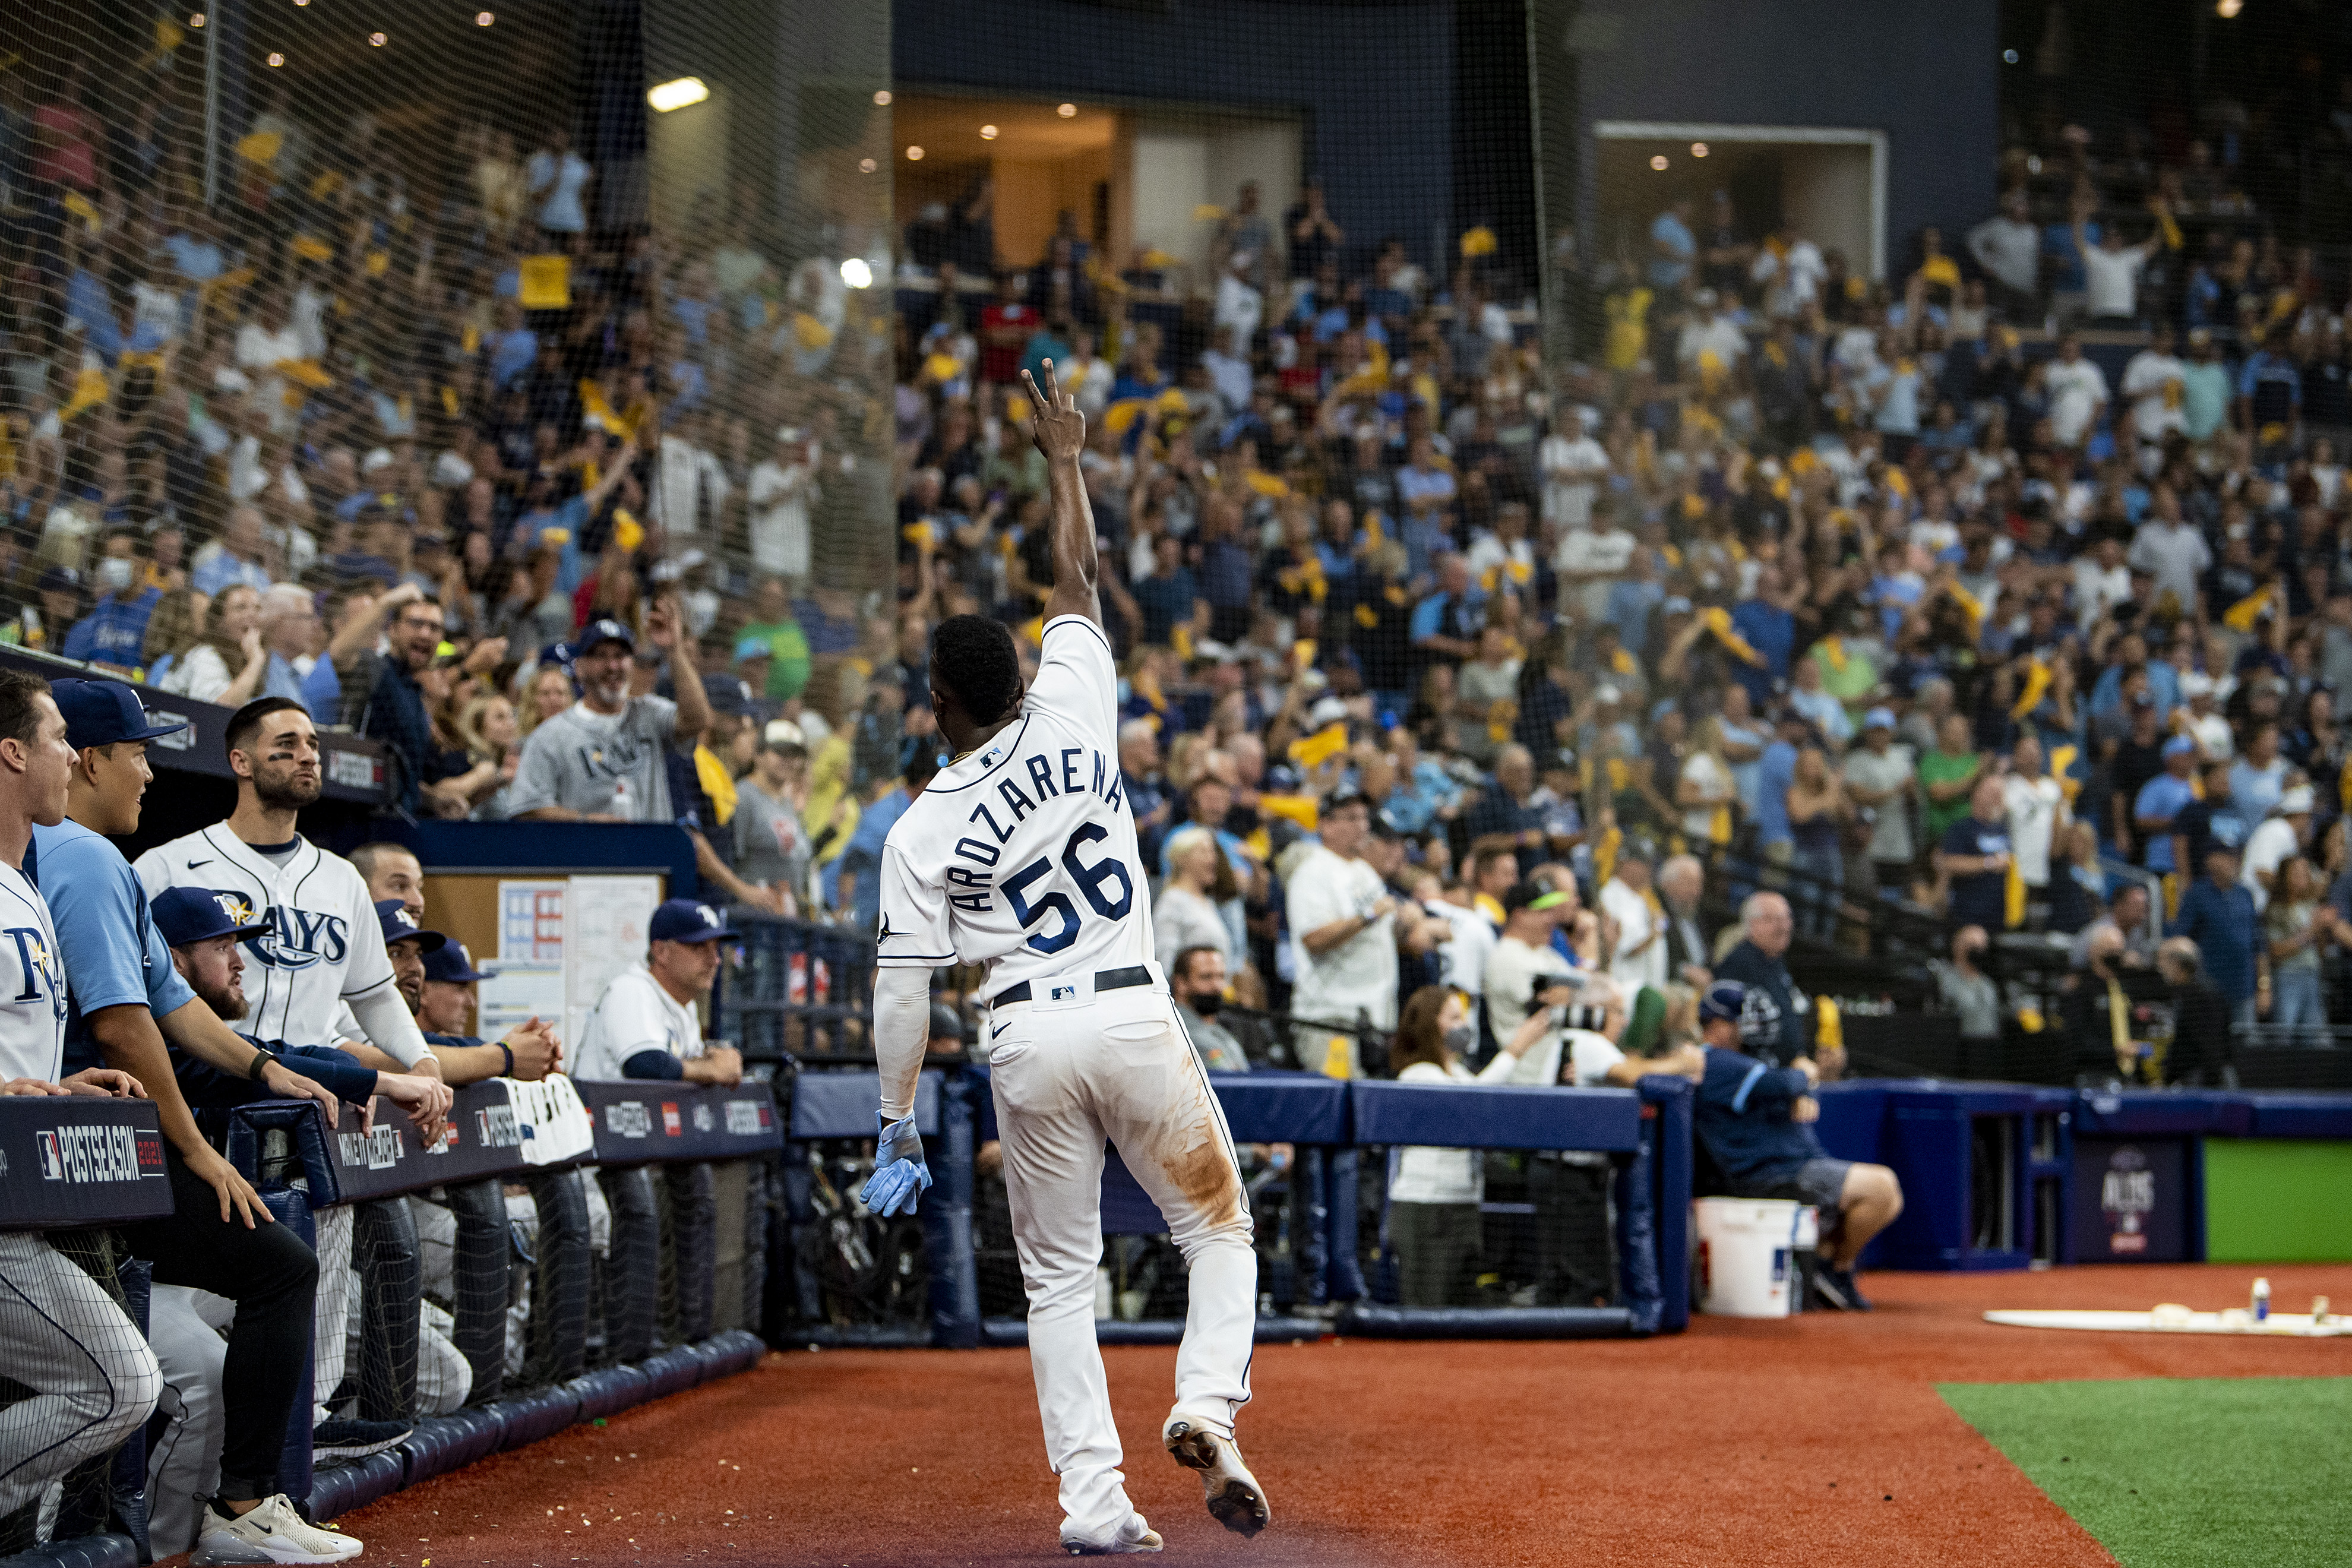 Randy Arozarena #56 of the Tampa Bay Rays gives a curtain call after stealing home plate after during the seventh inning of game one of the 2021 American League Division Series against the Boston Red Sox at Tropicana Field